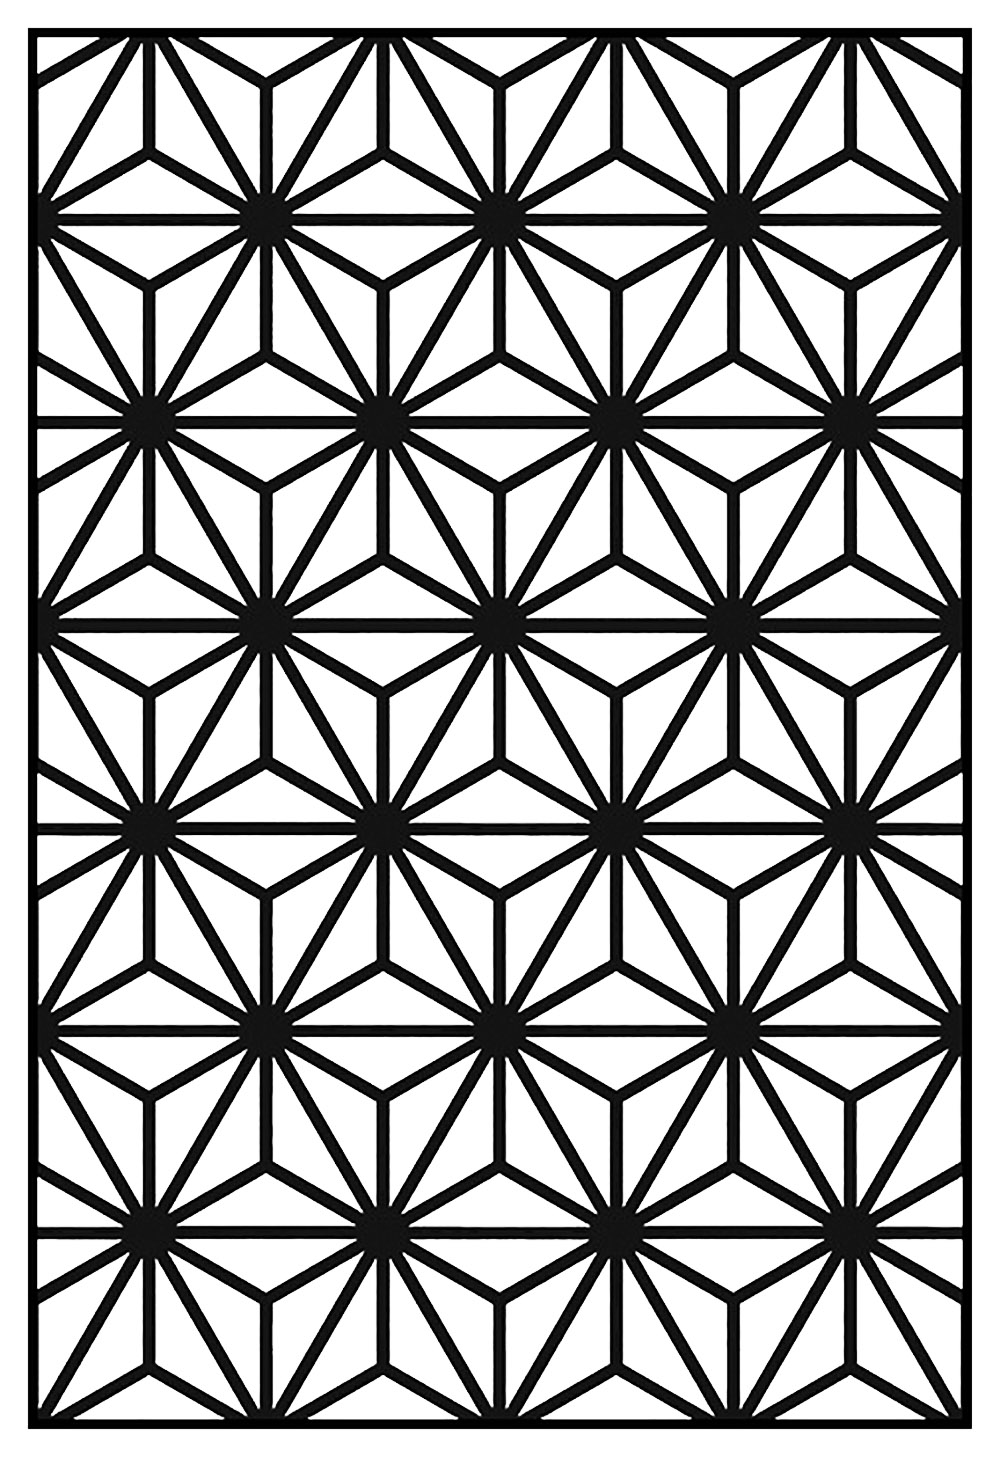 Geometric patterns art deco 10 art deco adult coloring pages for Art deco patterns